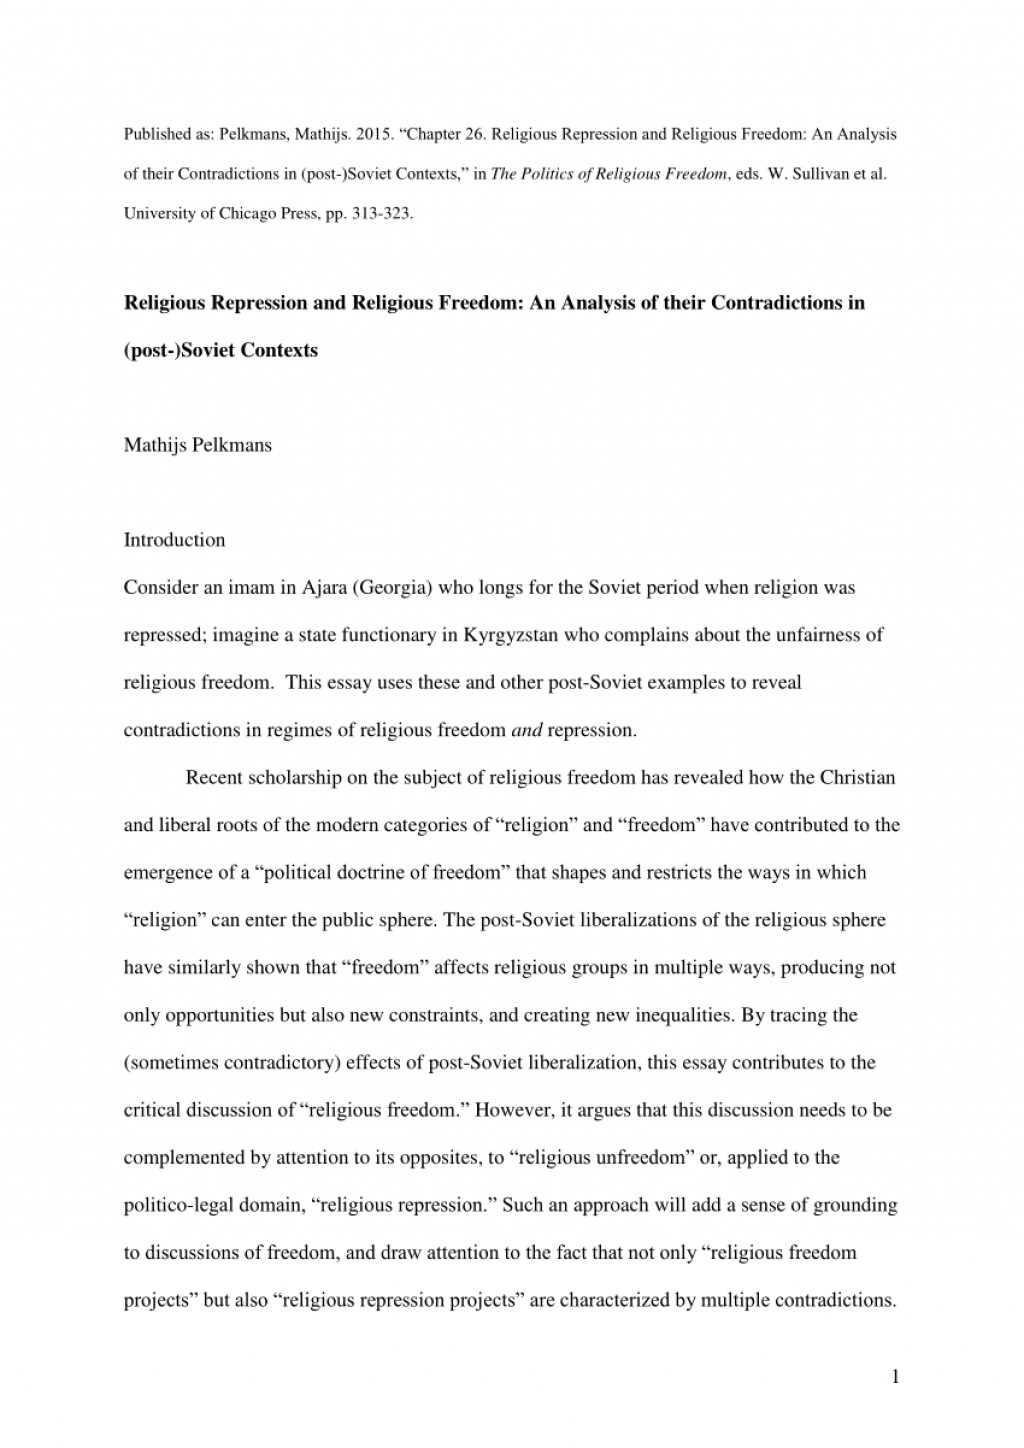 002 Freedom Of Religion Essay Example Beautiful Introduction In Malaysia Large